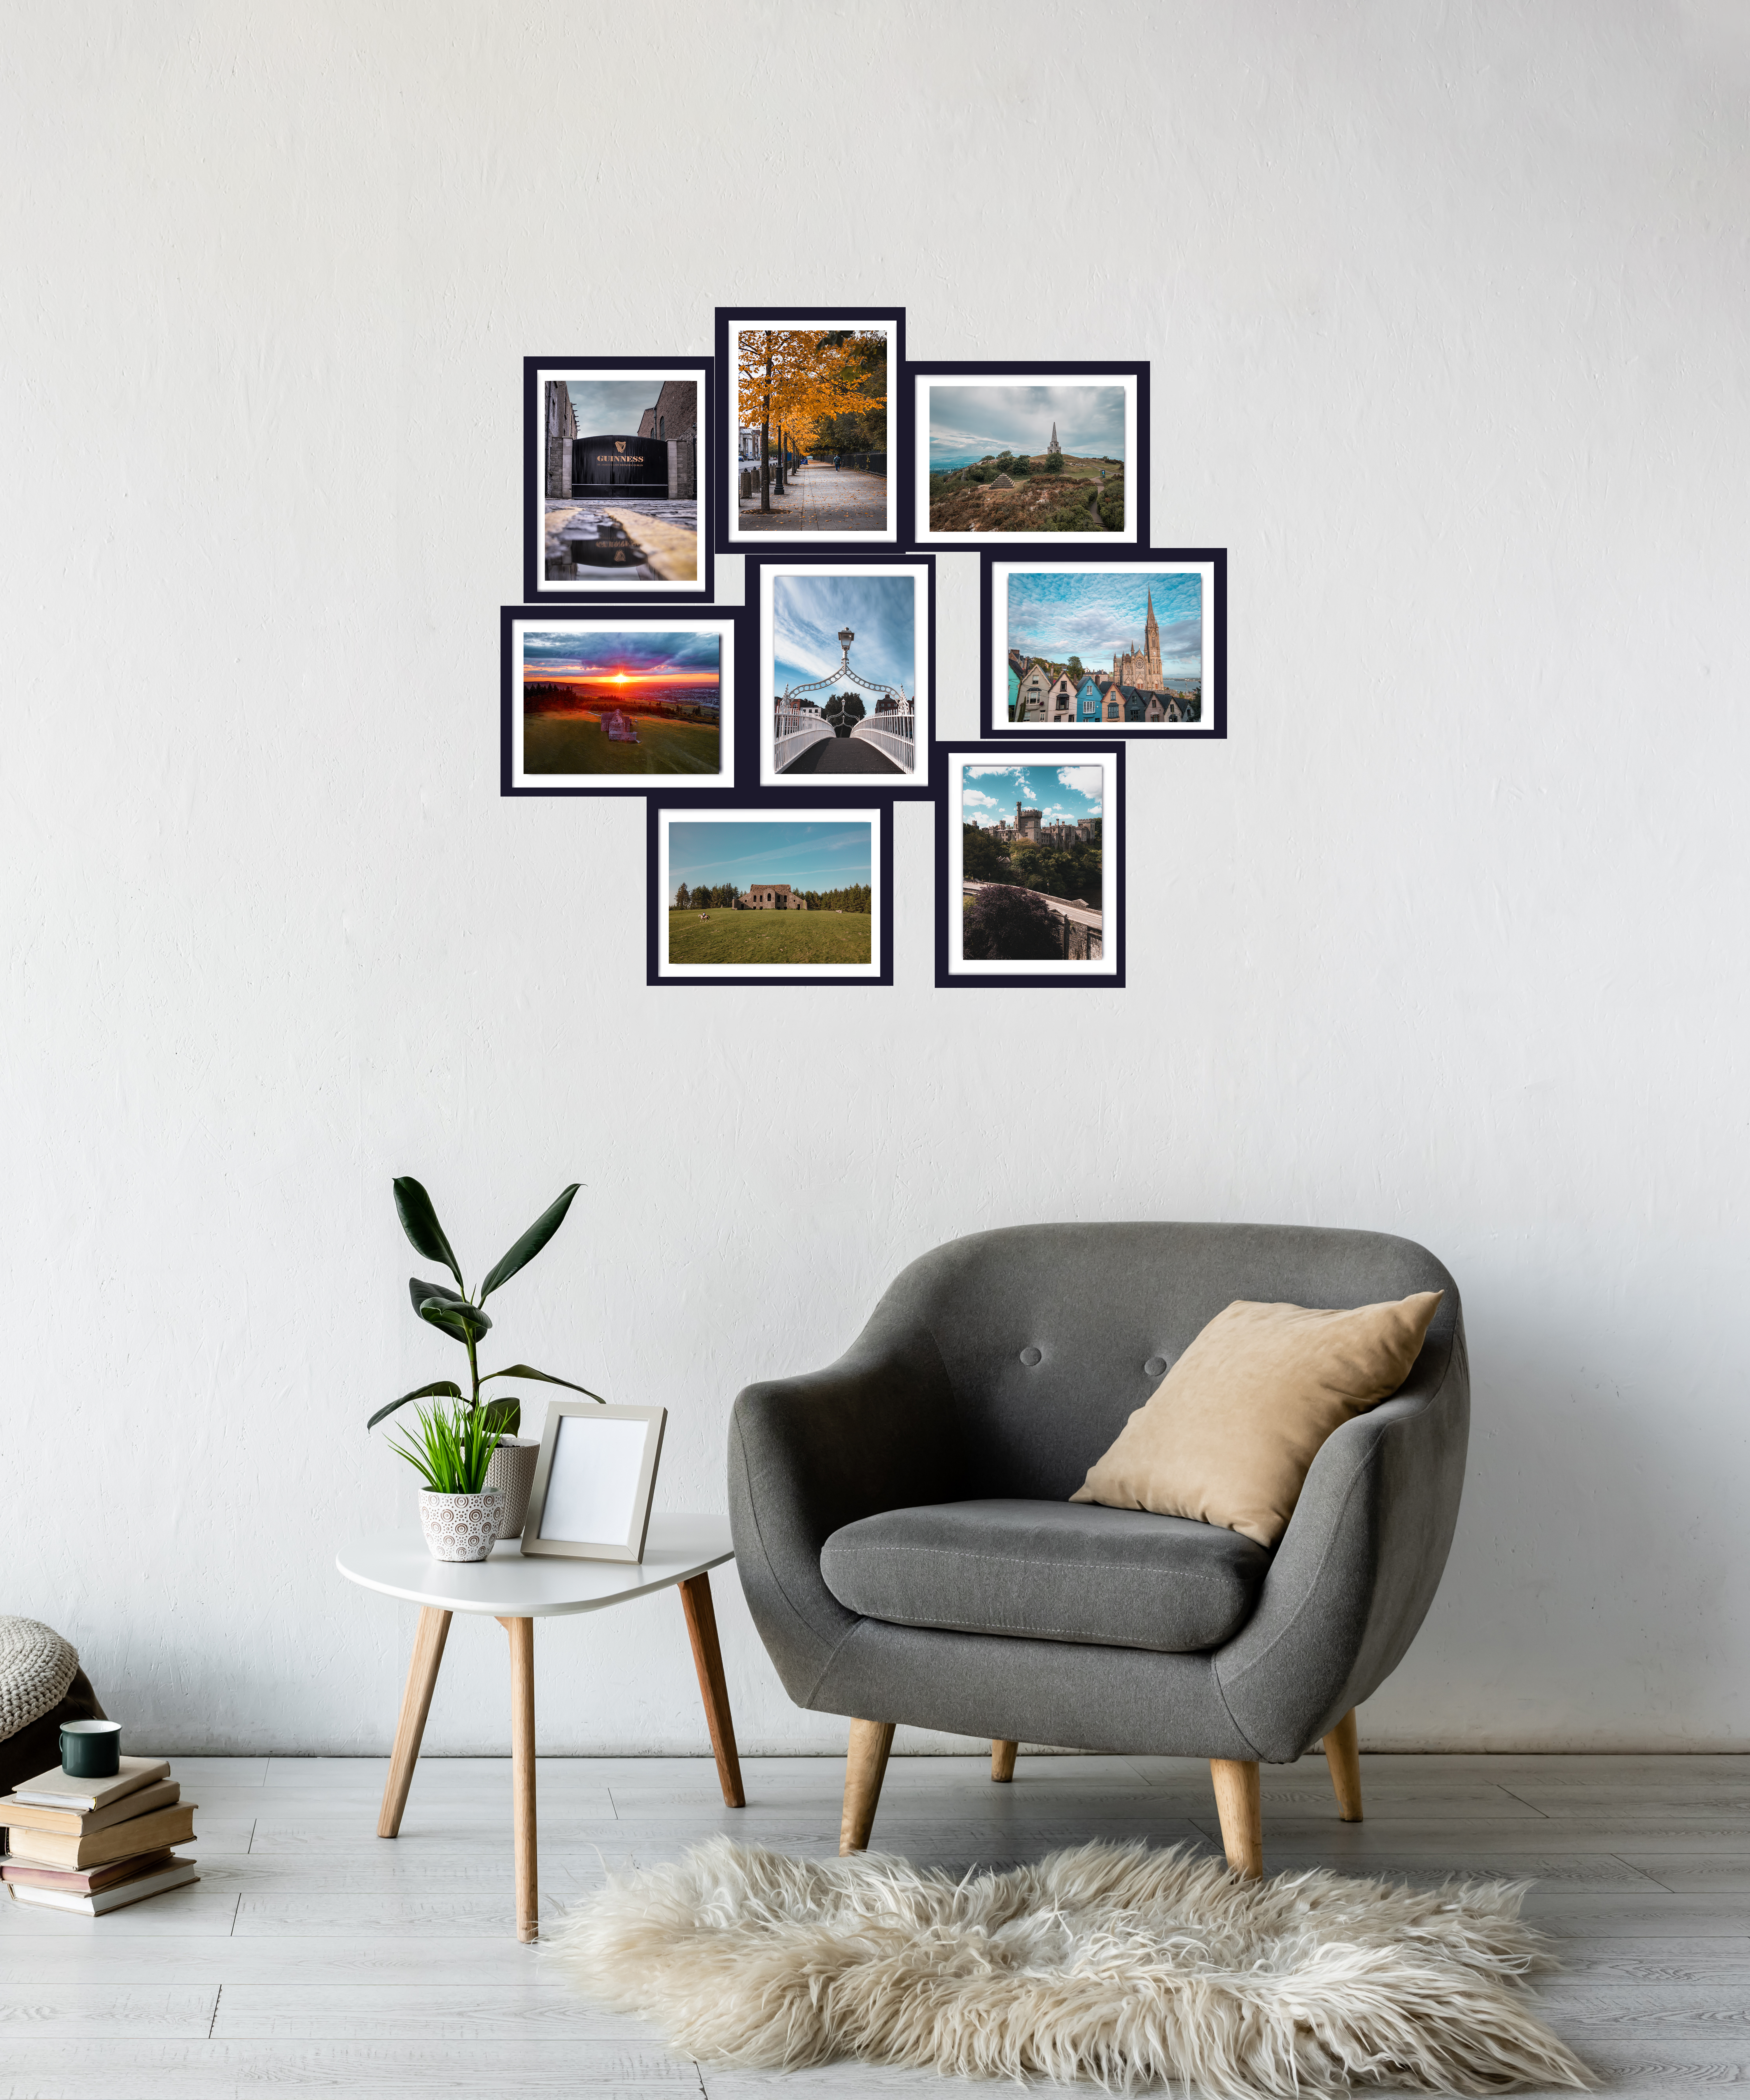 6x4 8 Group images display